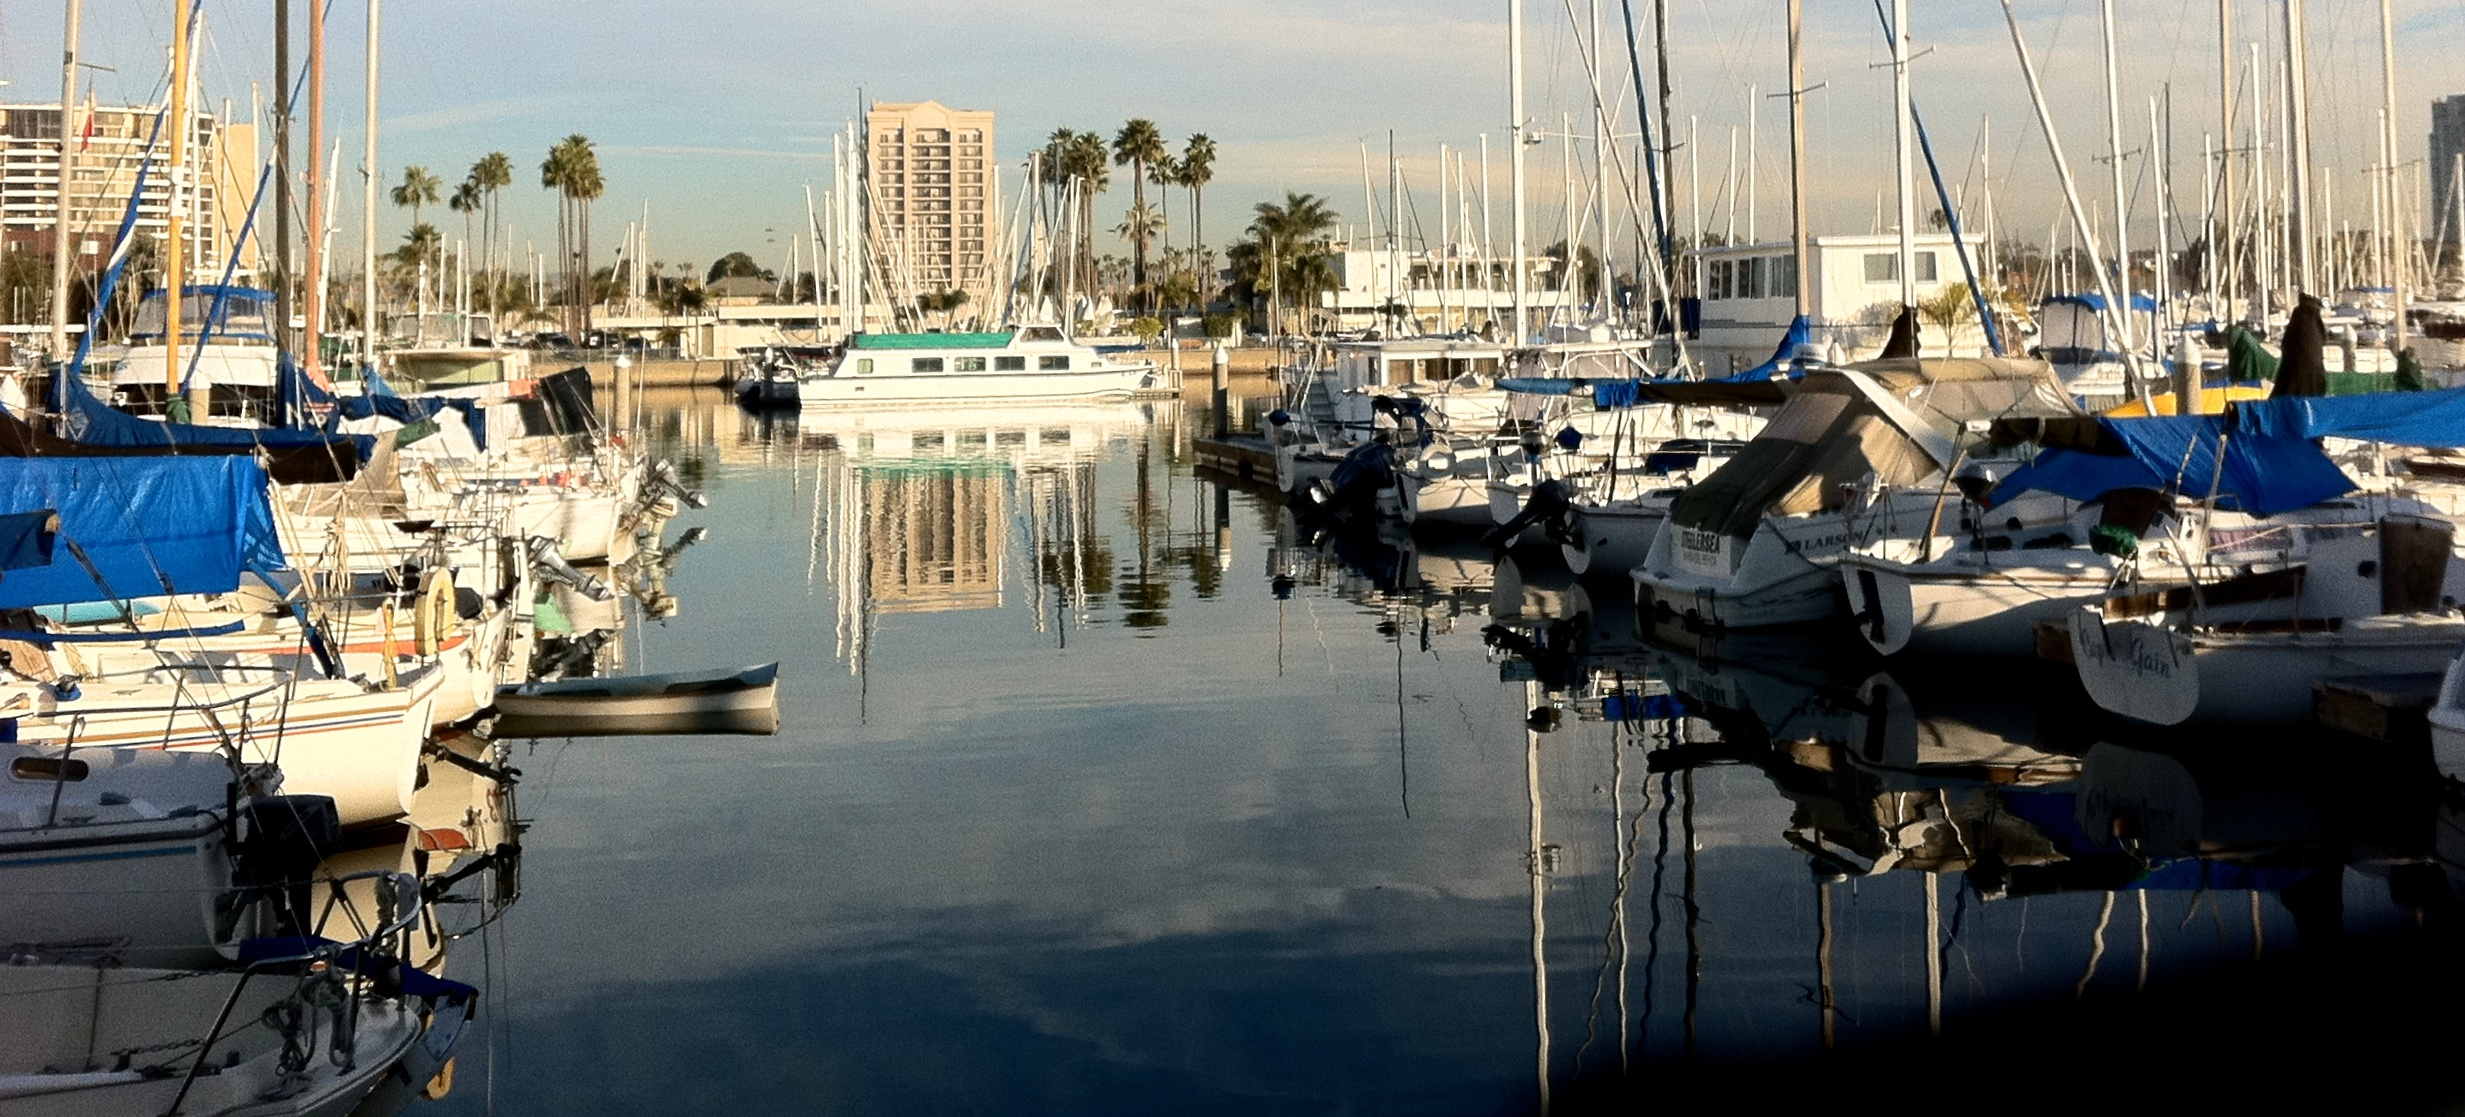 free online dating & chat in marina del rey Marina del rey incredible homes for rent in marina del rey available today come west mid-city find mid city apartments for rent that are anything but middle of.